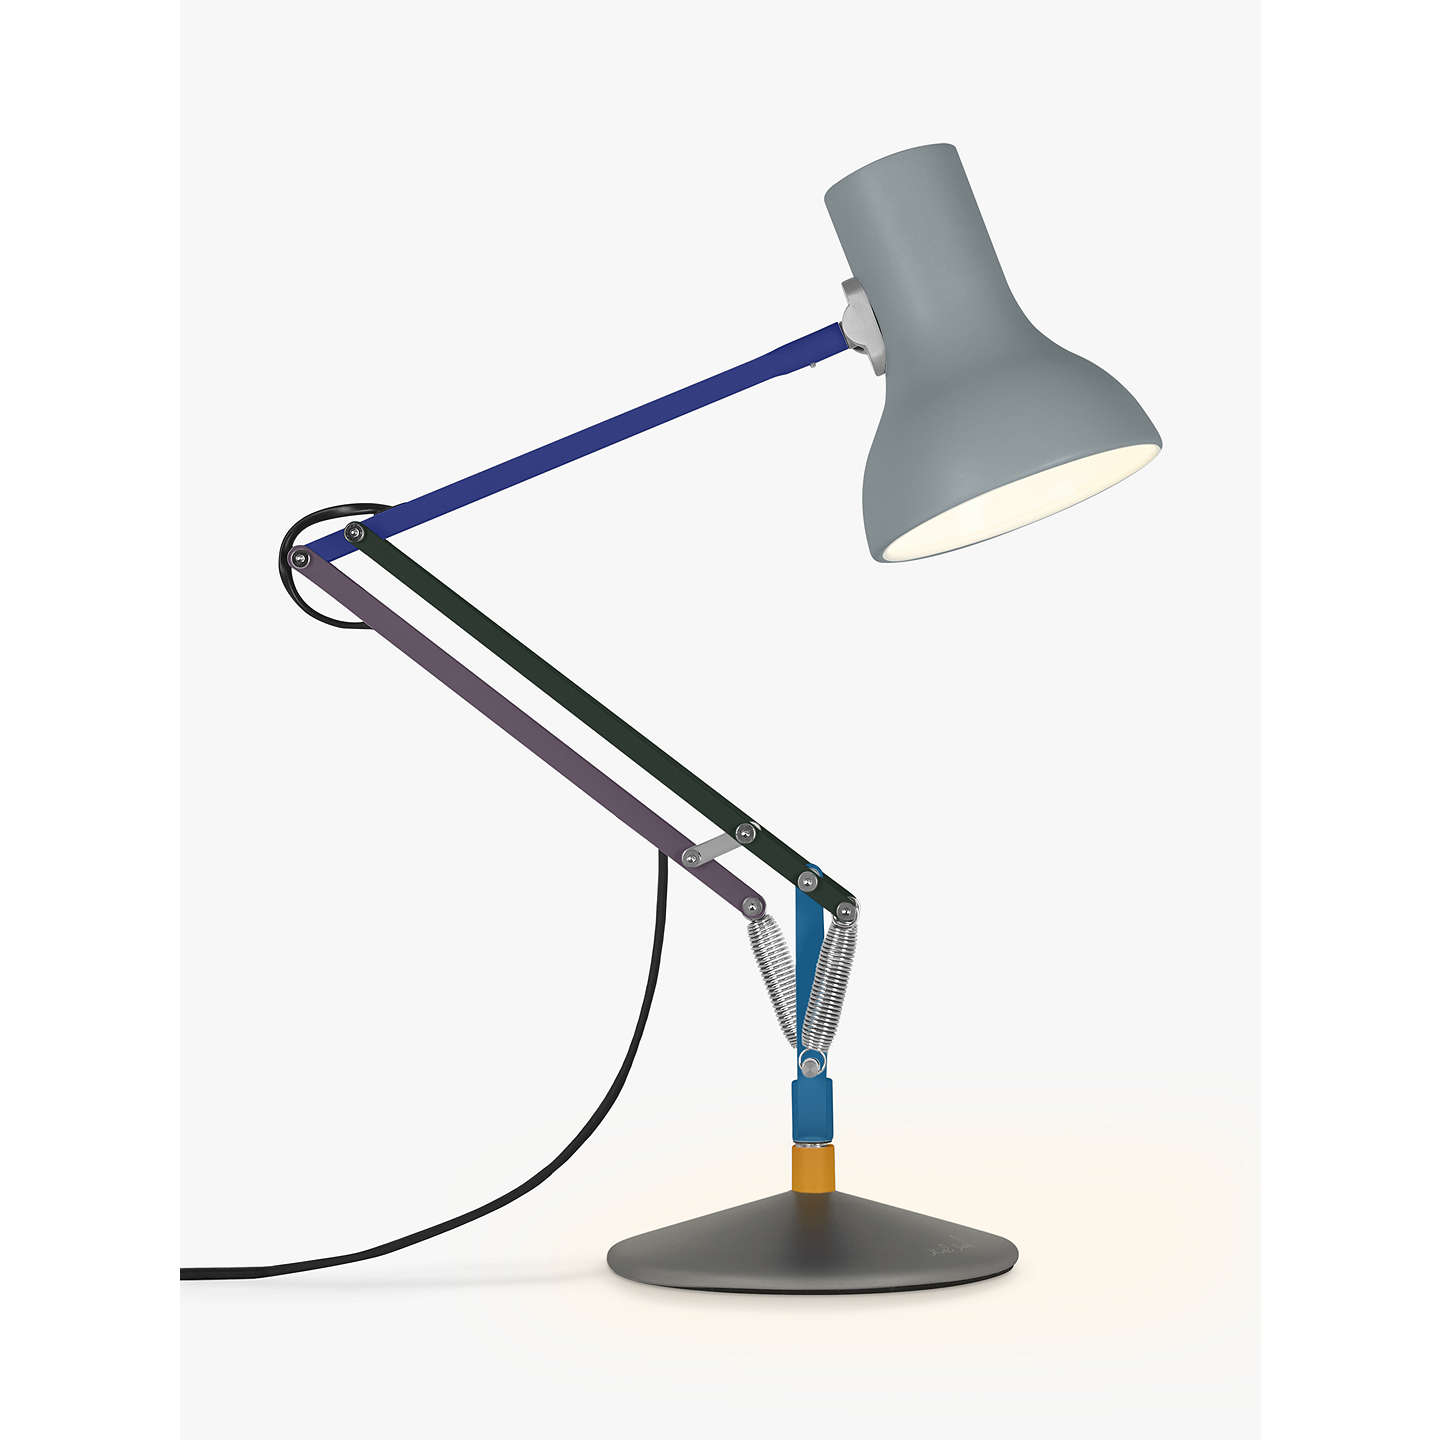 Anglepoise Paul Smith Type 75 Mini Desk Lamp Edition 2 At Johnlewis